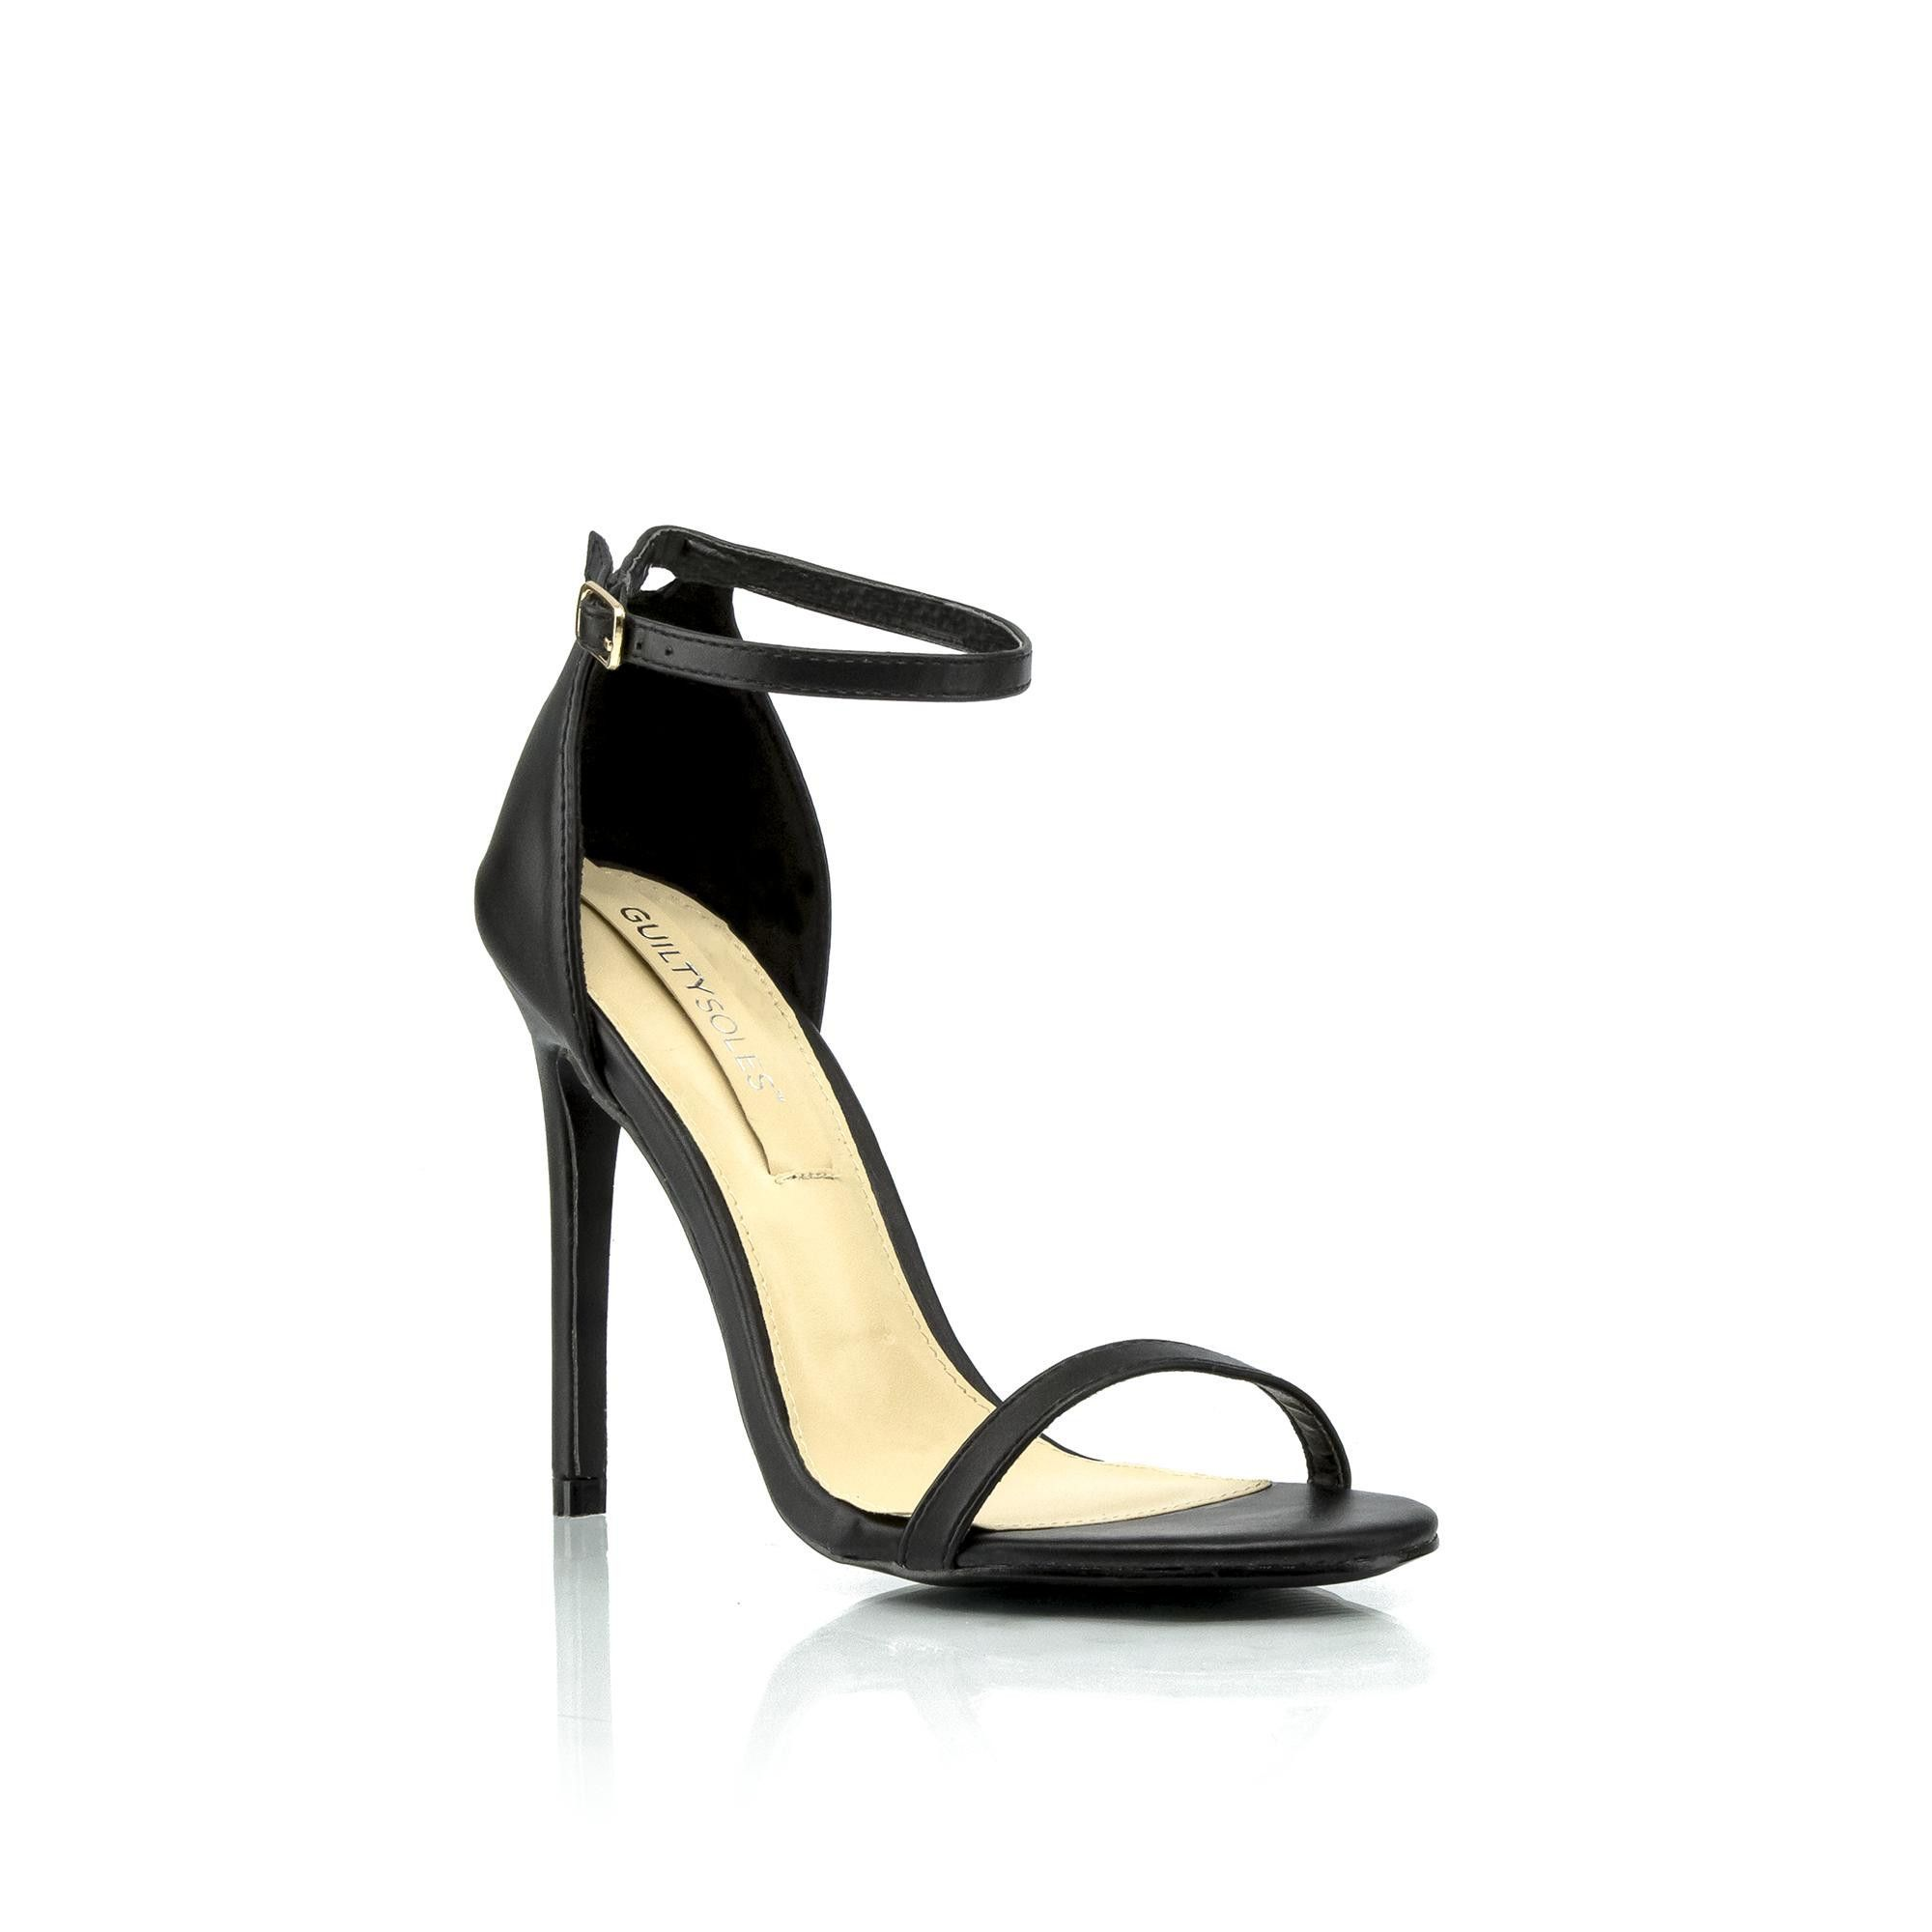 2b80720fa Step out this season in our sexy Charlotte heel! This strappy style  complements any  ootd. Charlotte is bare enough to show off your ankles and  latest pedi